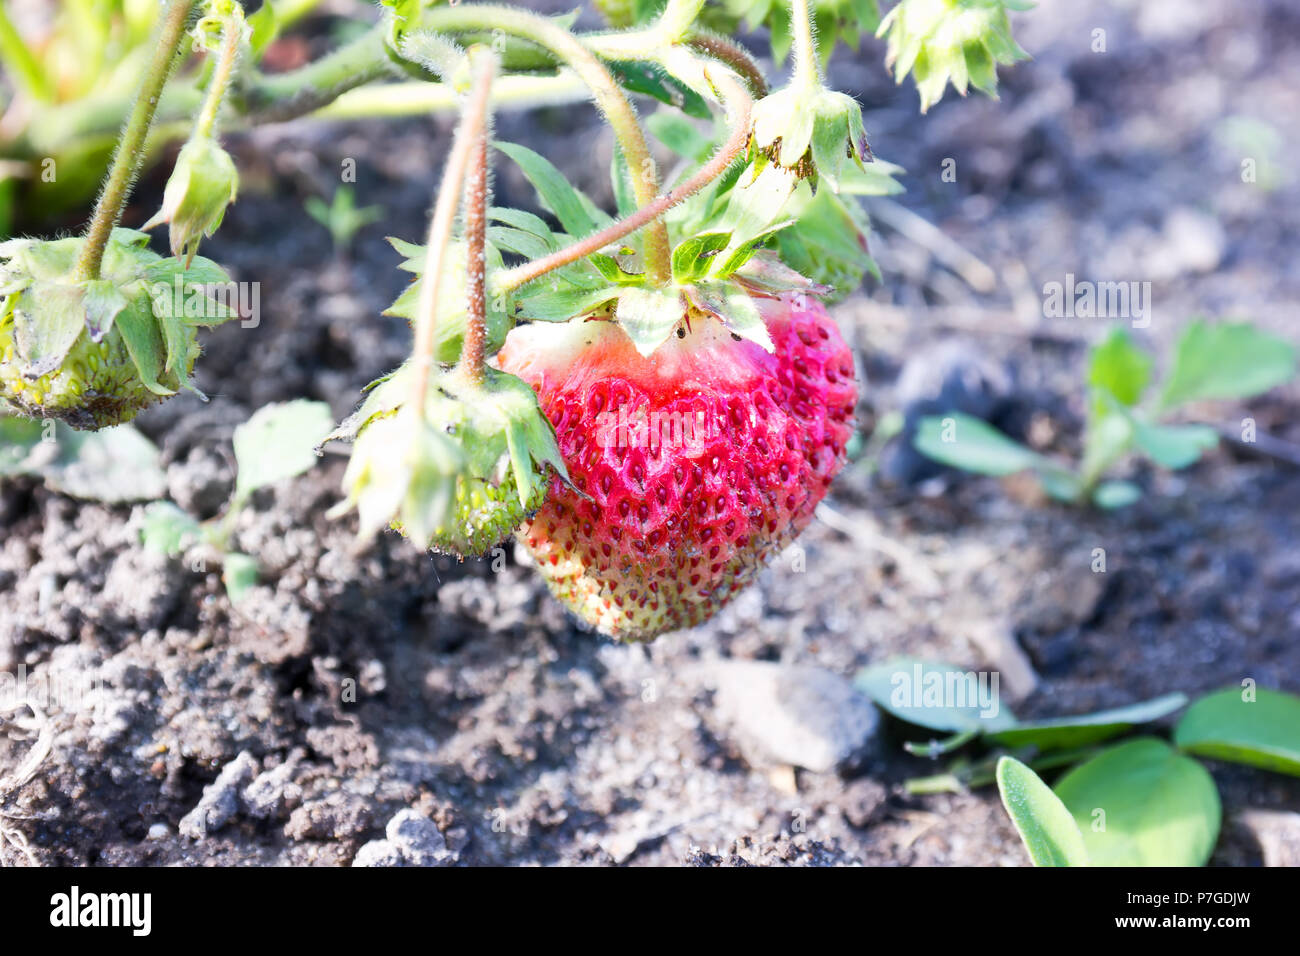 Ripe berry of strawberry on a bed in the garden - Stock Image